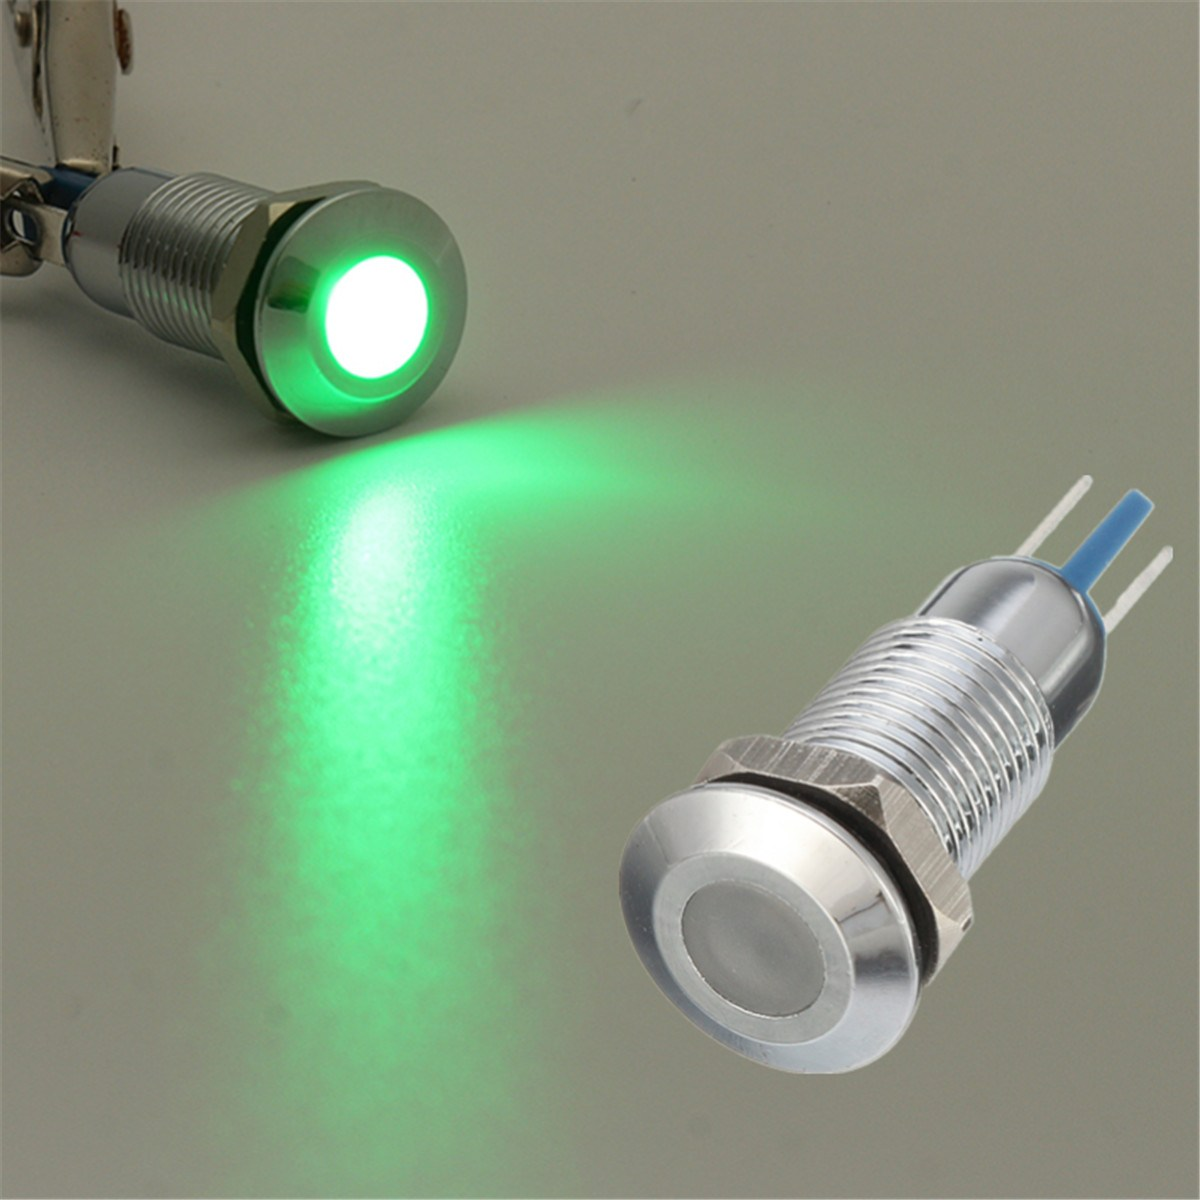 2x Metal 8mm Green LED Indicator Warning Light Lamp Pilot Panel Dashboard Car Boat Truck